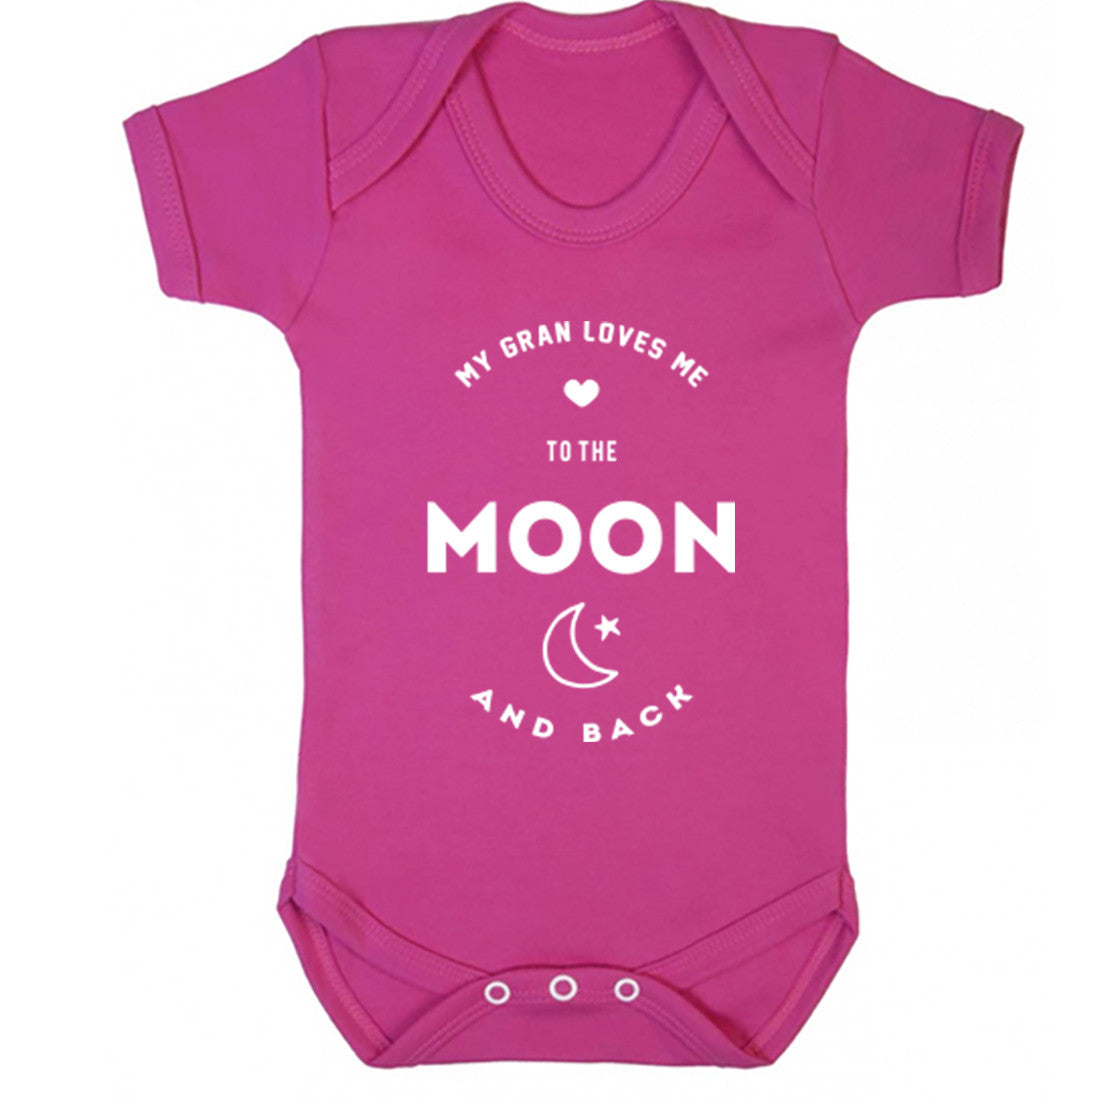 My Gran Loves Me To The Moon And Back Baby Vest K1542 - Illustrated Identity Ltd.